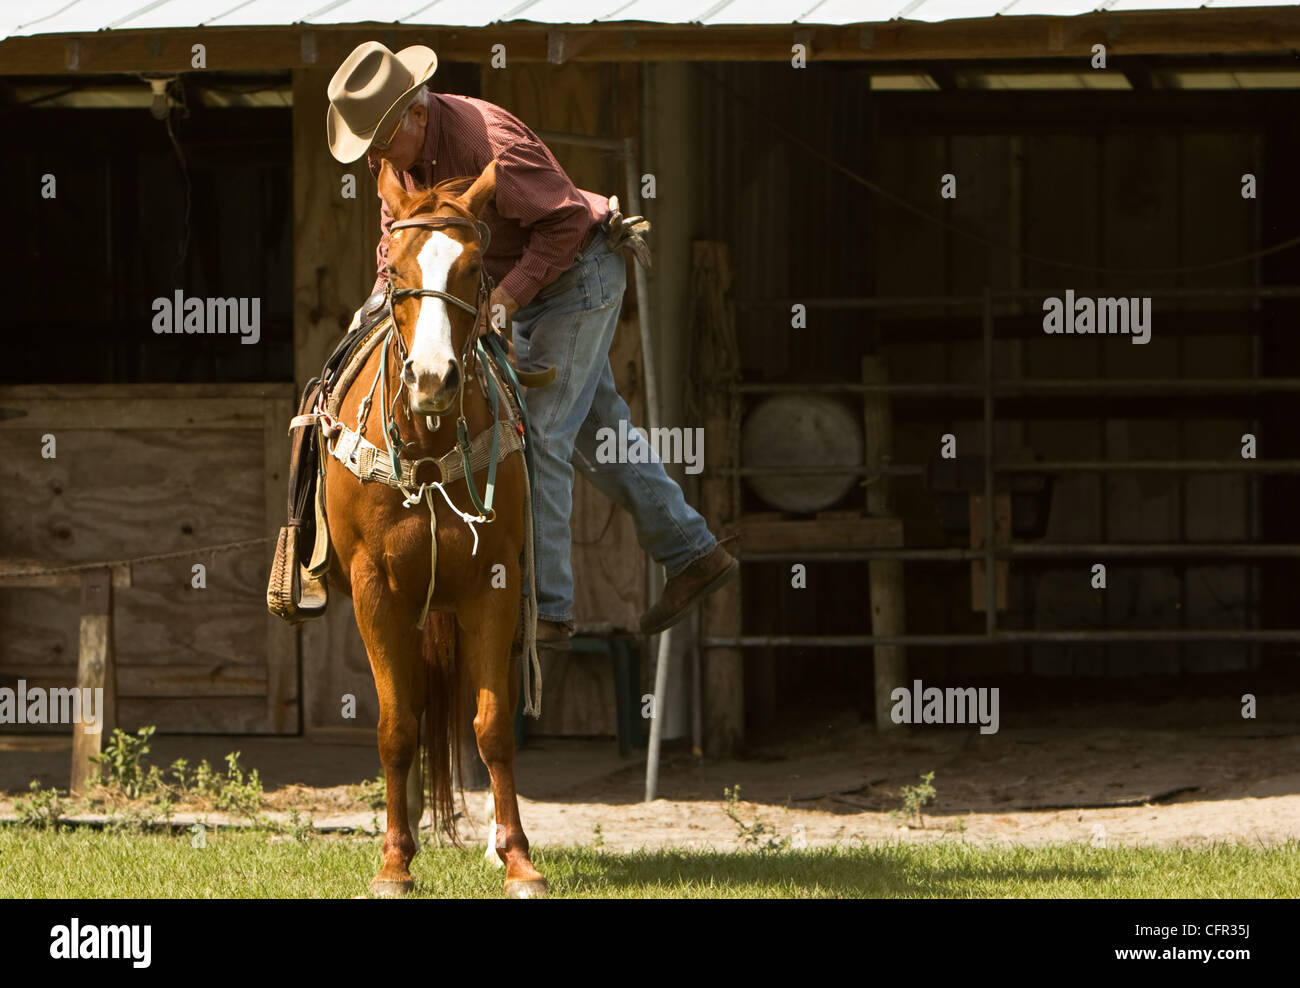 A cowboy is mounting his horse in front of his barn. Stock Photo